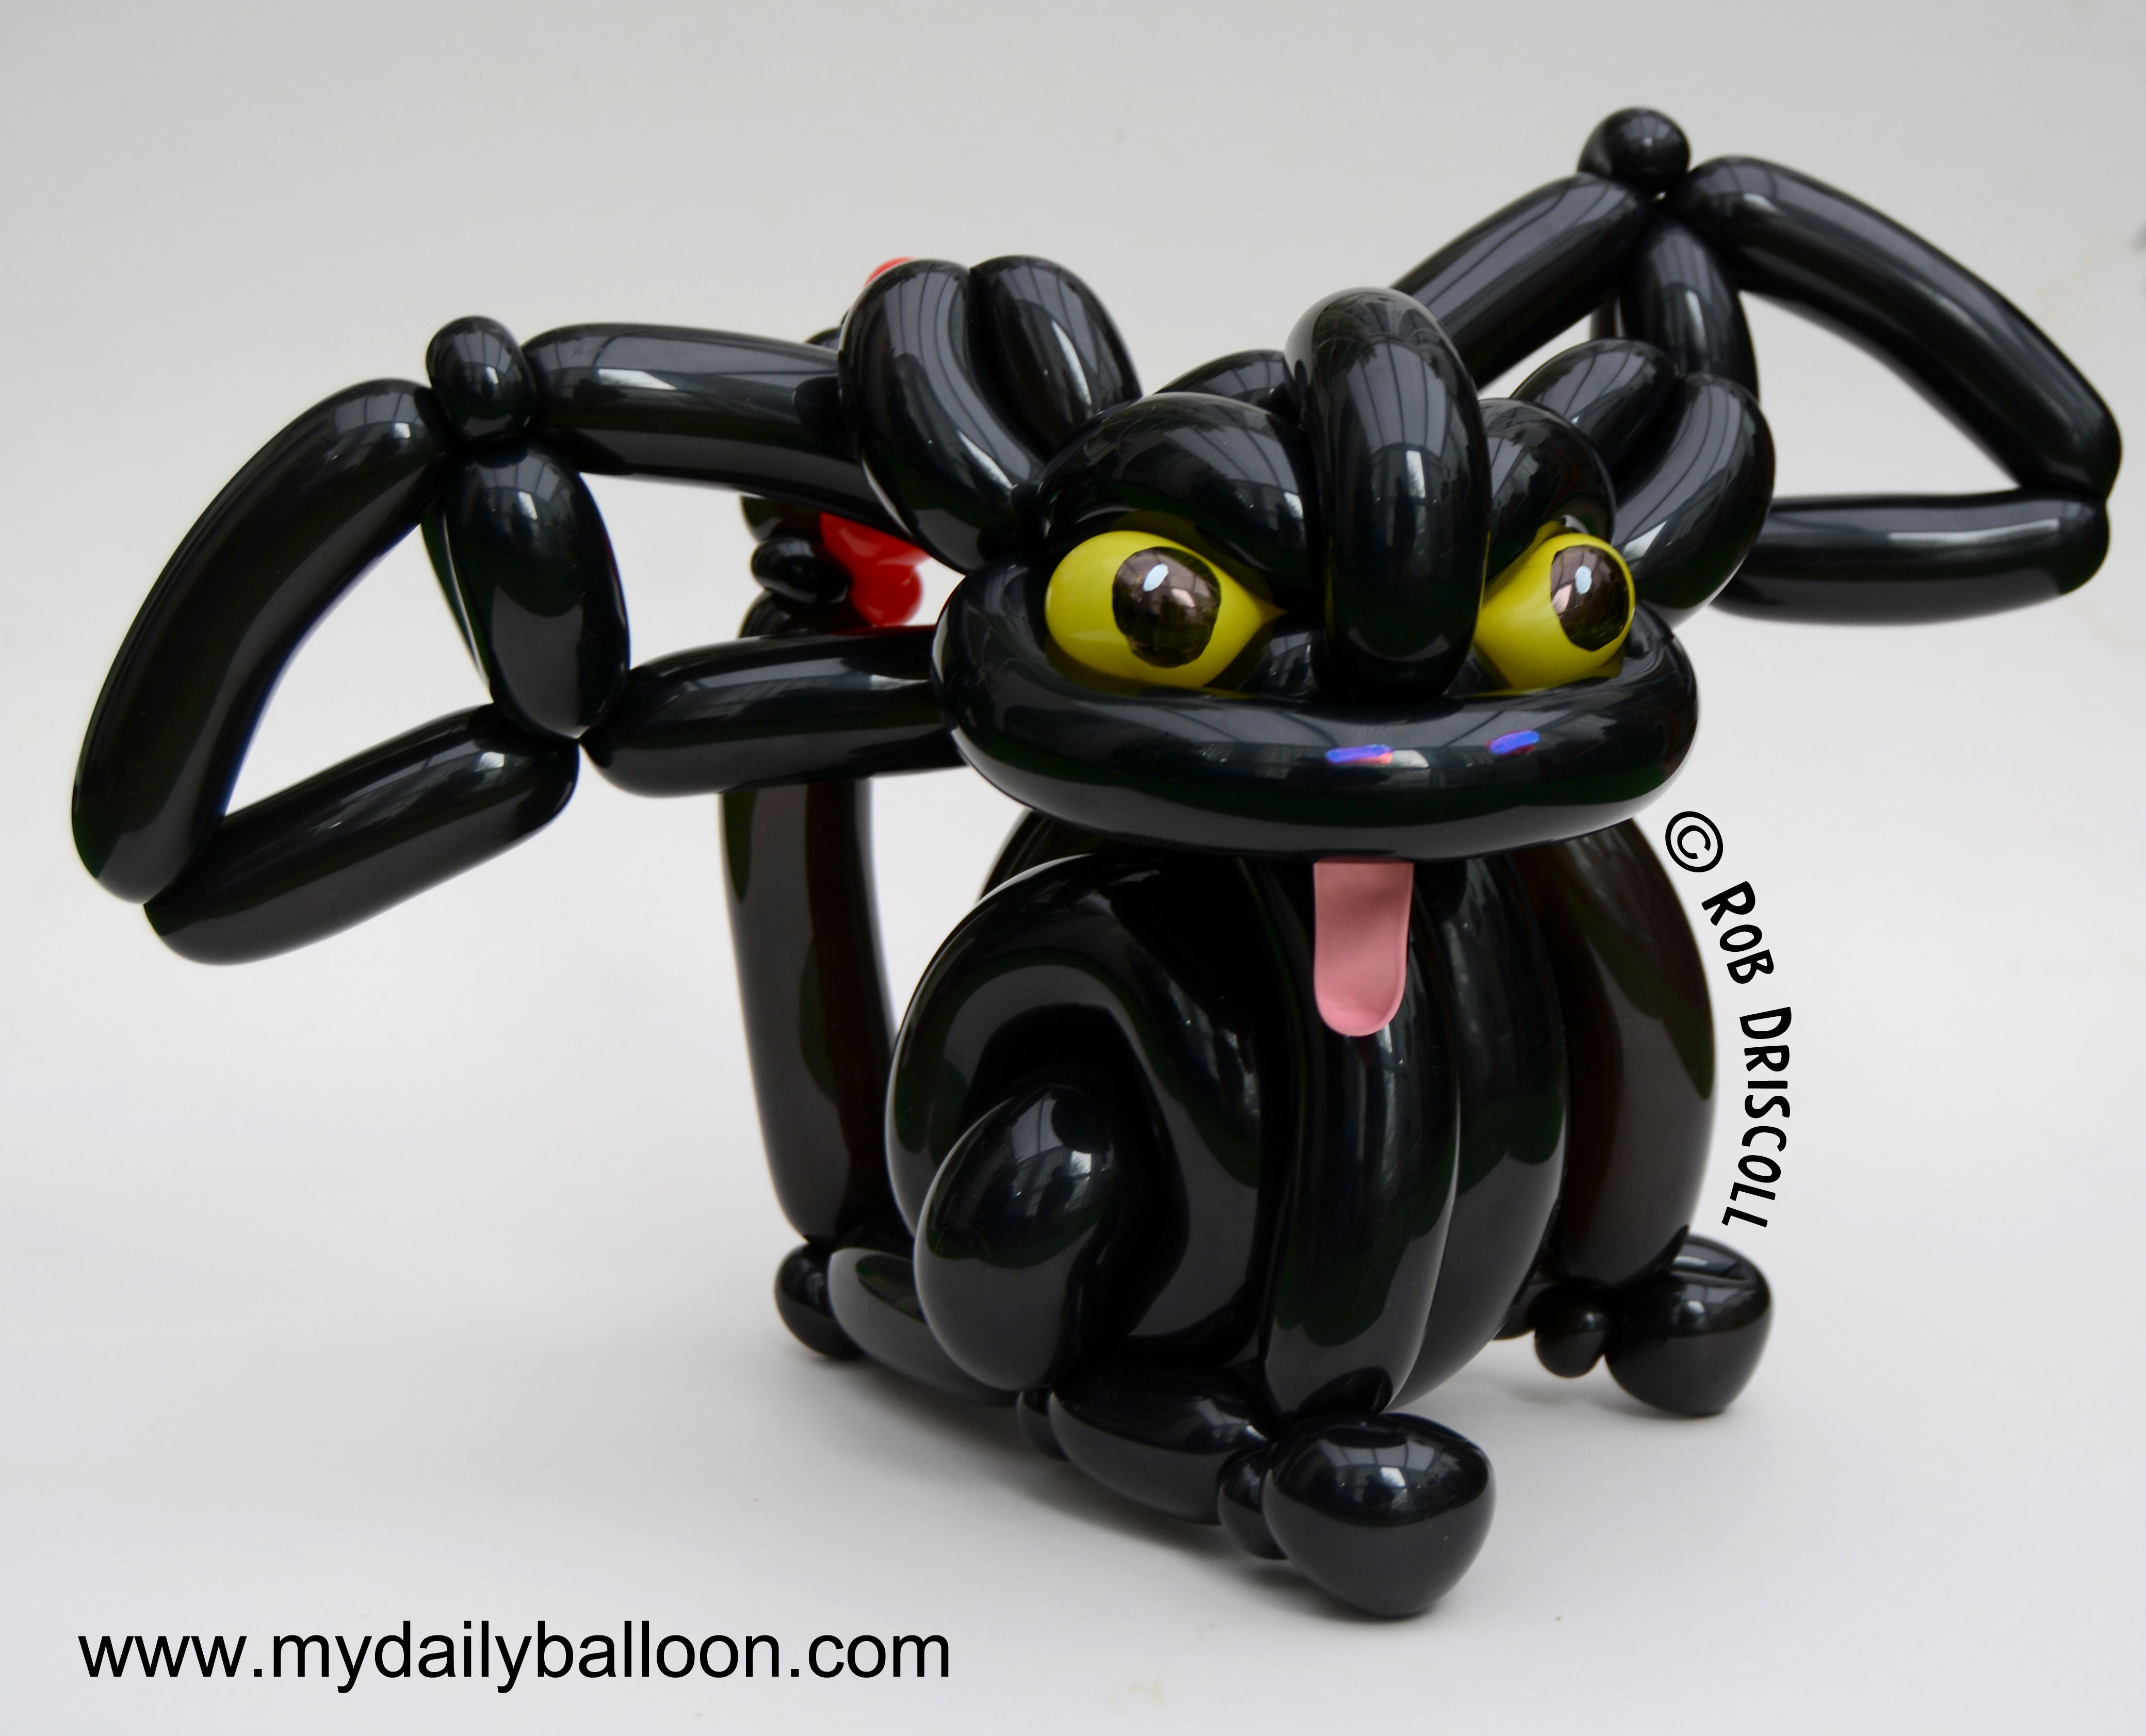 Toothless the Dragon Balloon Twisting Dragons and dinosaurs